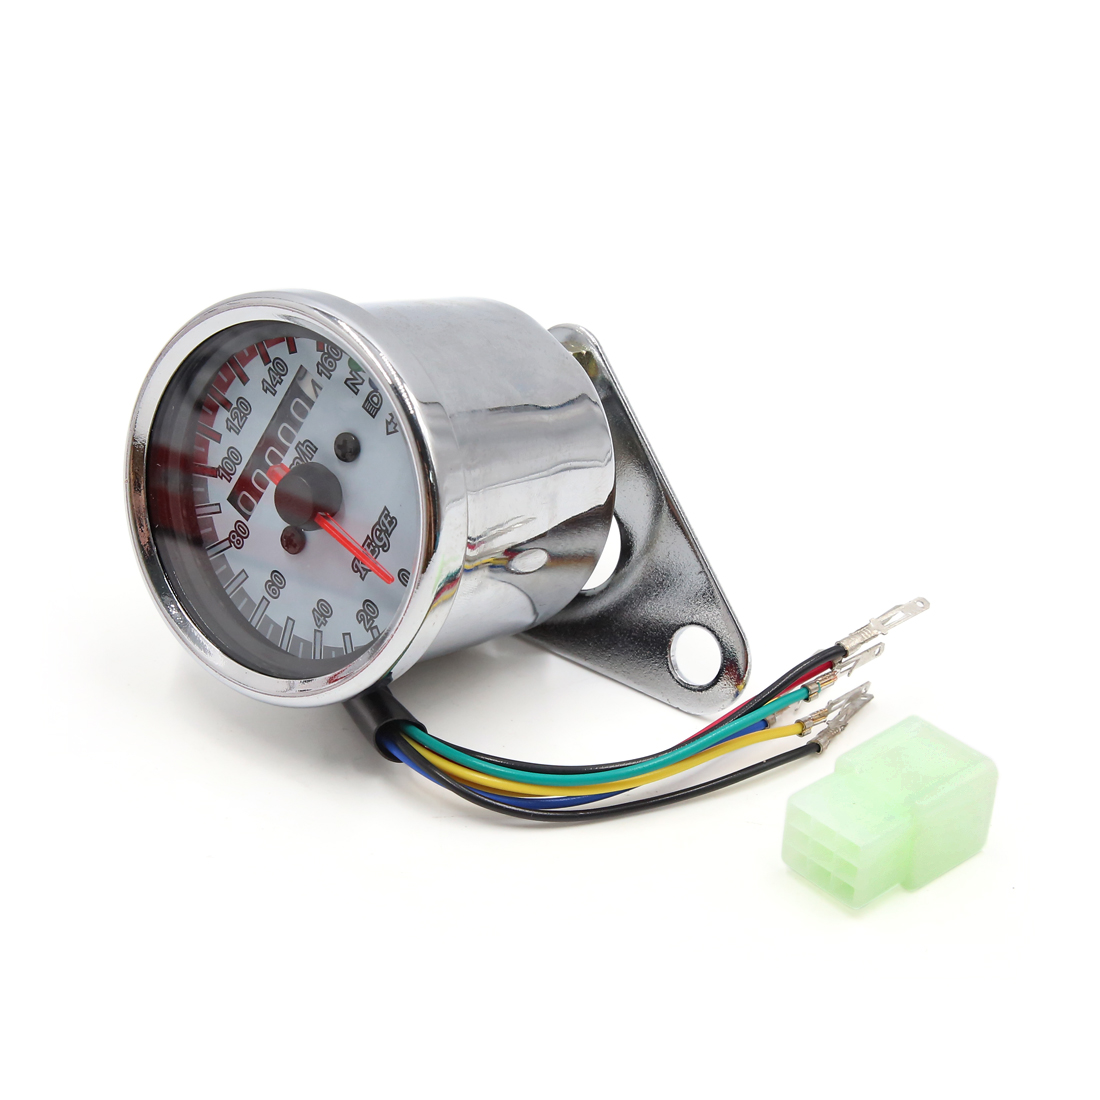 Universal Chrome Plating 0-160Km/h Speedometer Odometer Gauge for Motorcycle